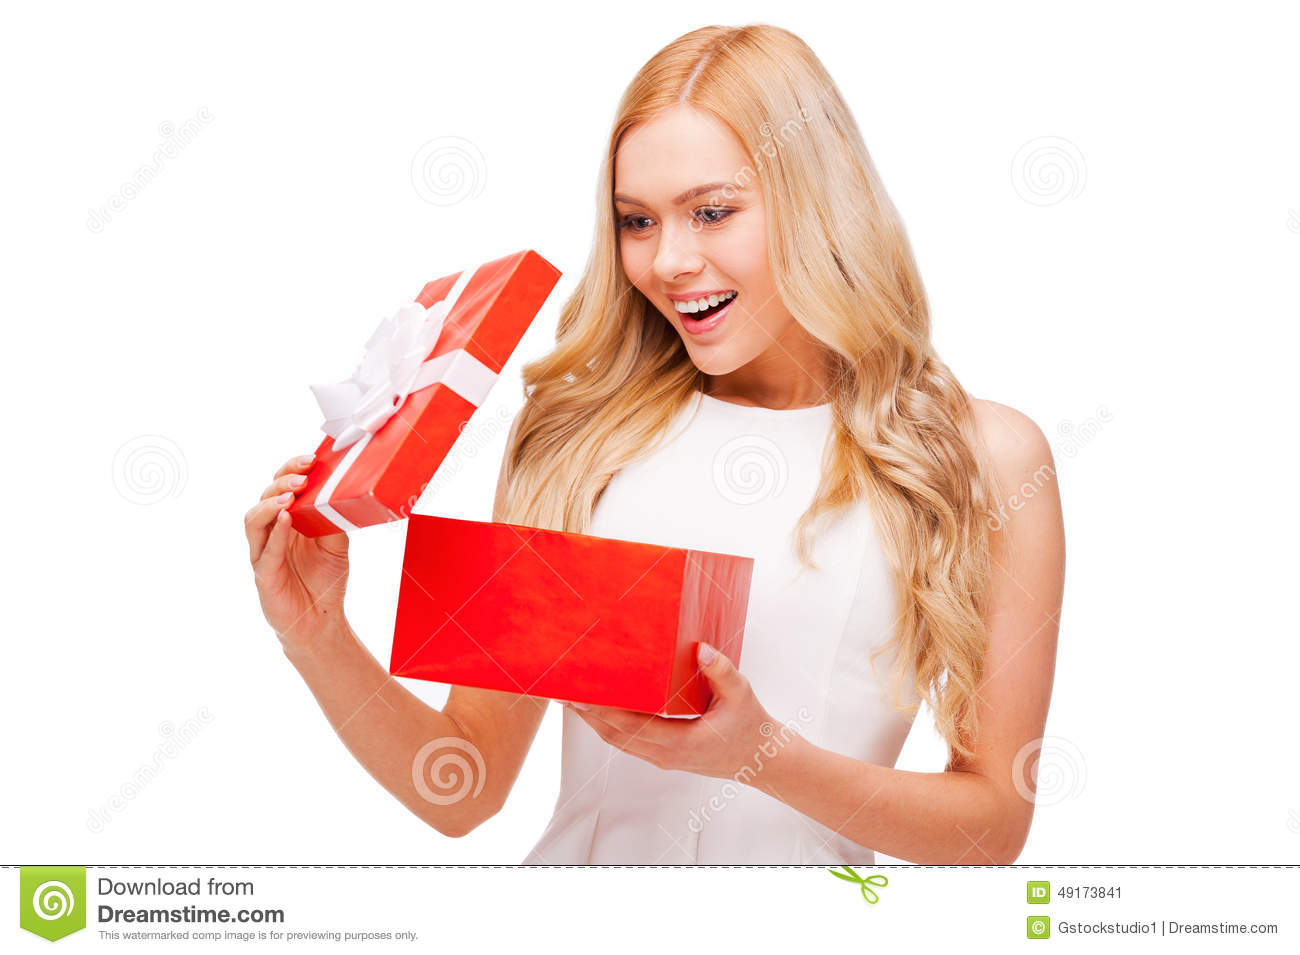 What A Surprise! Royalty-Free Stock Photo | CartoonDealer ...